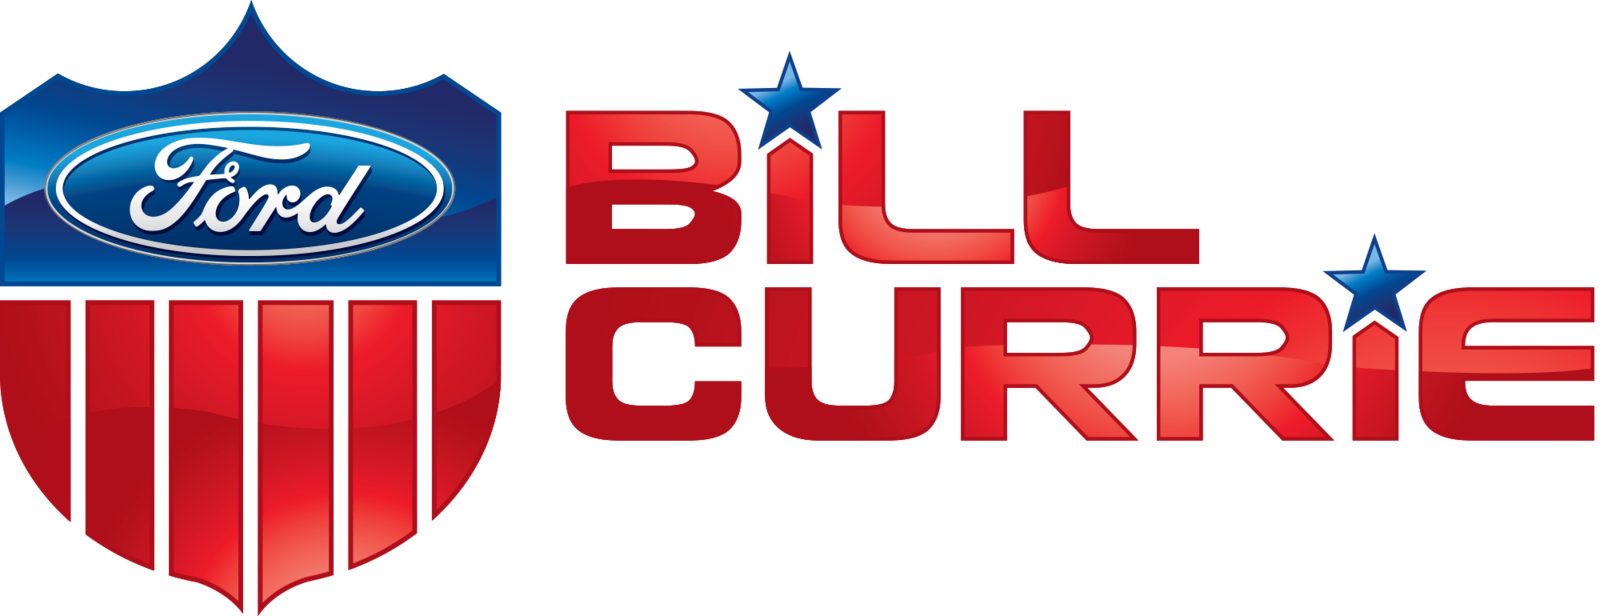 bill currie ford tampa fl read consumer reviews browse used and new cars for sale. Black Bedroom Furniture Sets. Home Design Ideas